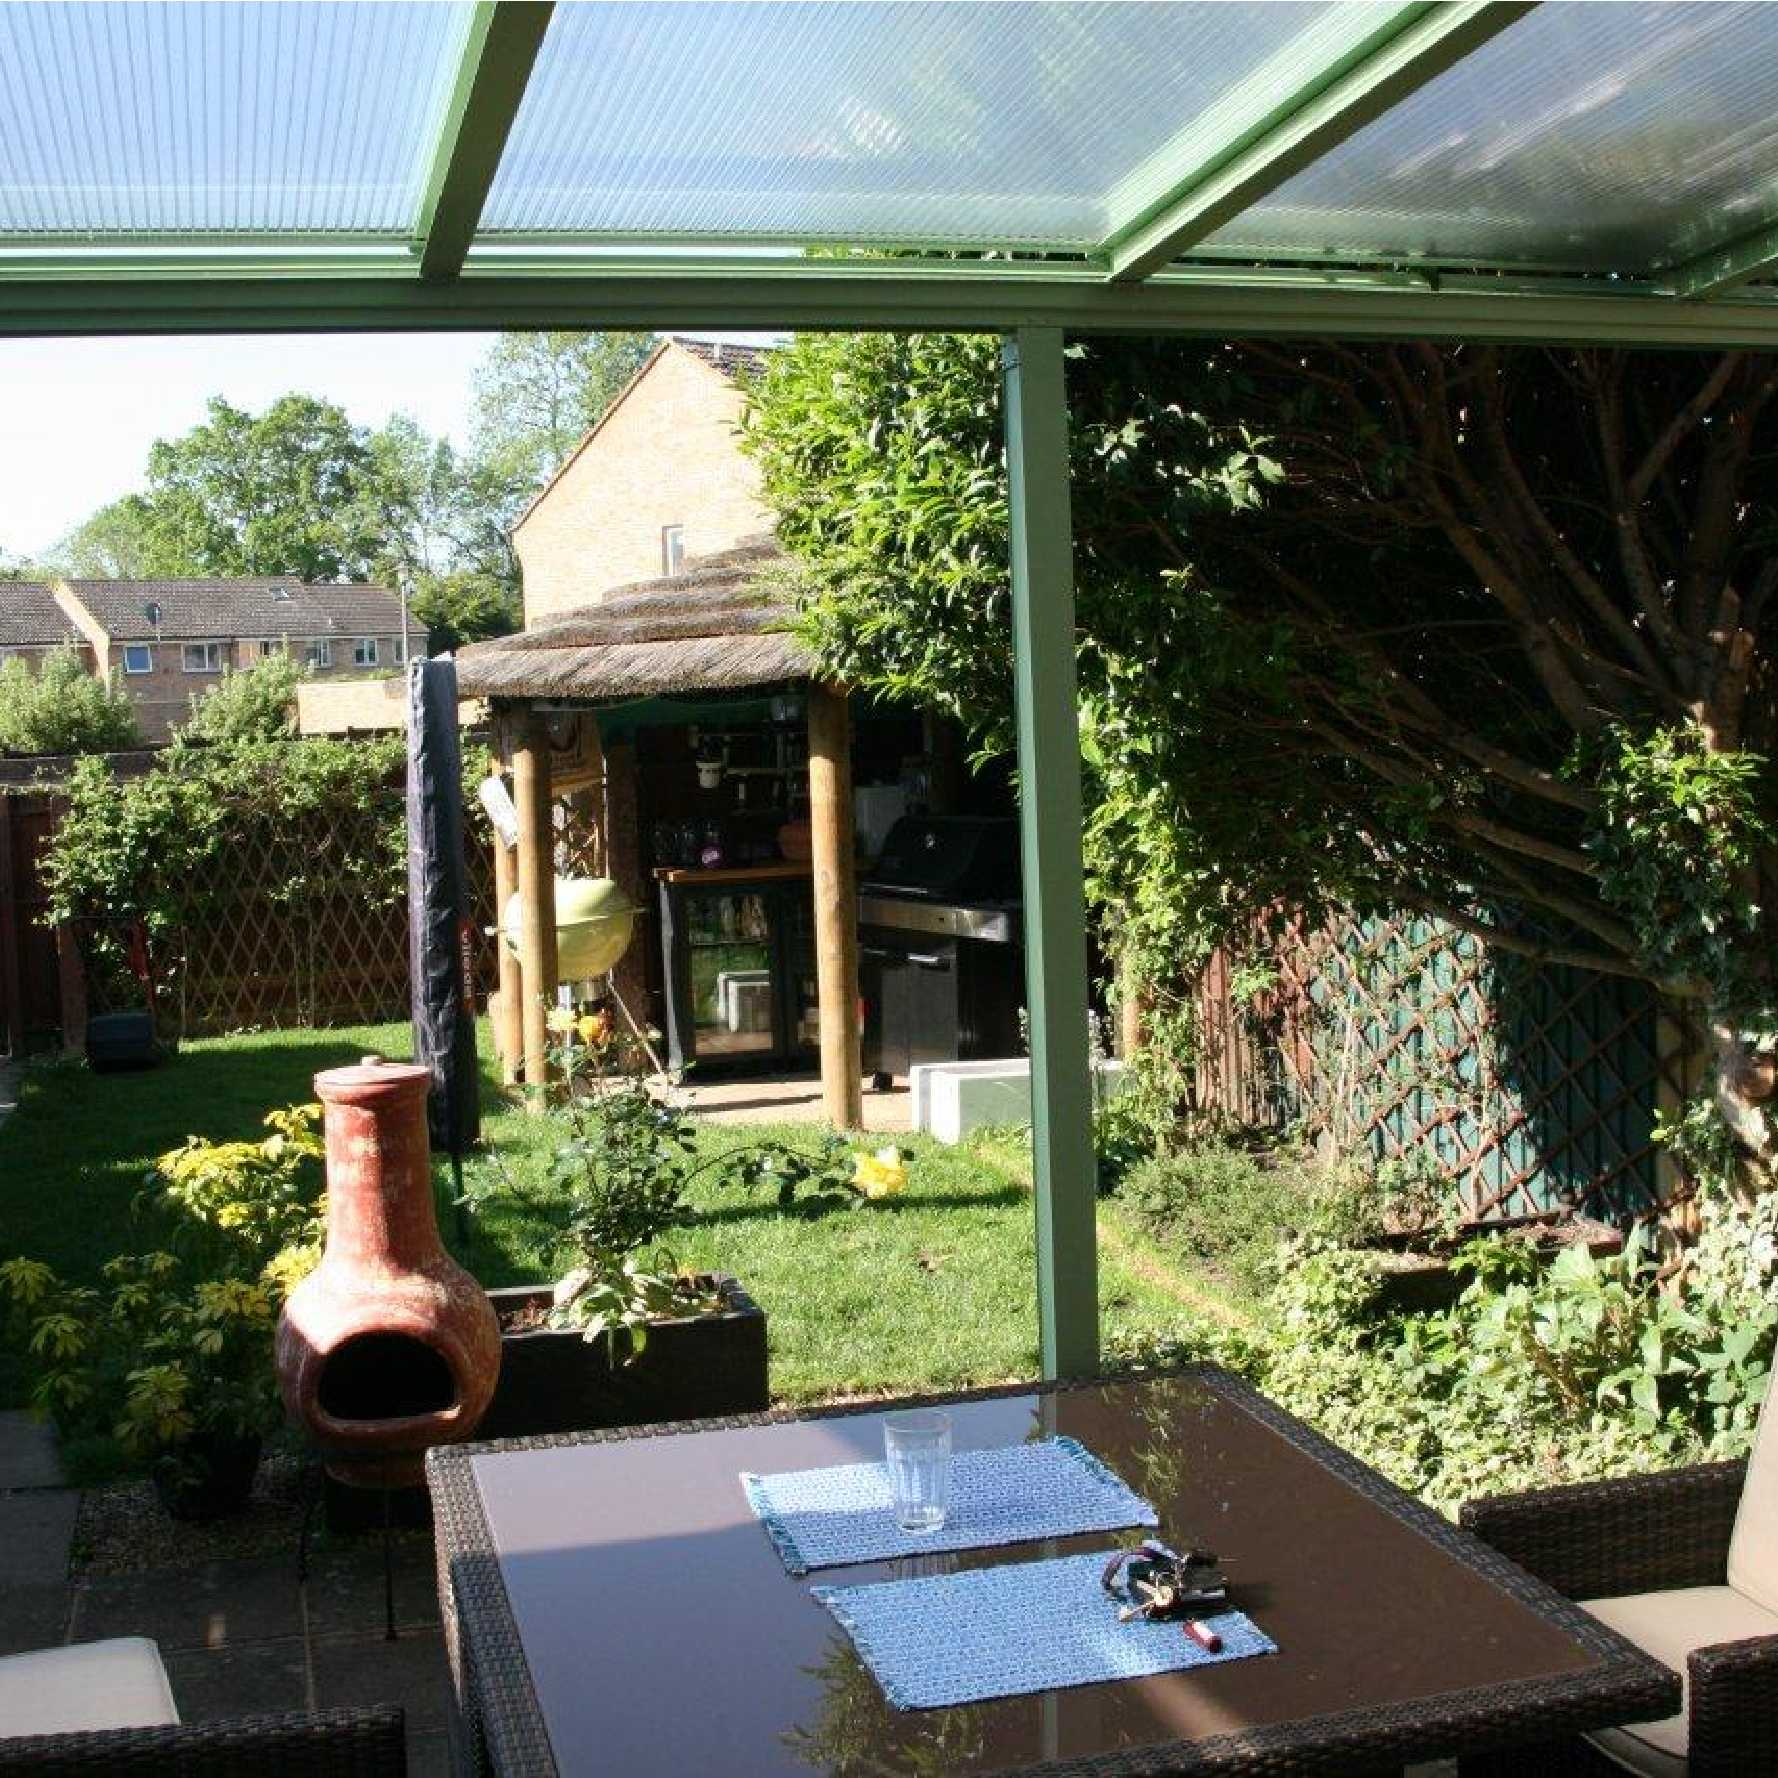 Affordable Omega Smart Lean-To Canopy with 16mm Polycarbonate Glazing - 8.4m (W) x 2.5m (P), (4) Supporting Posts